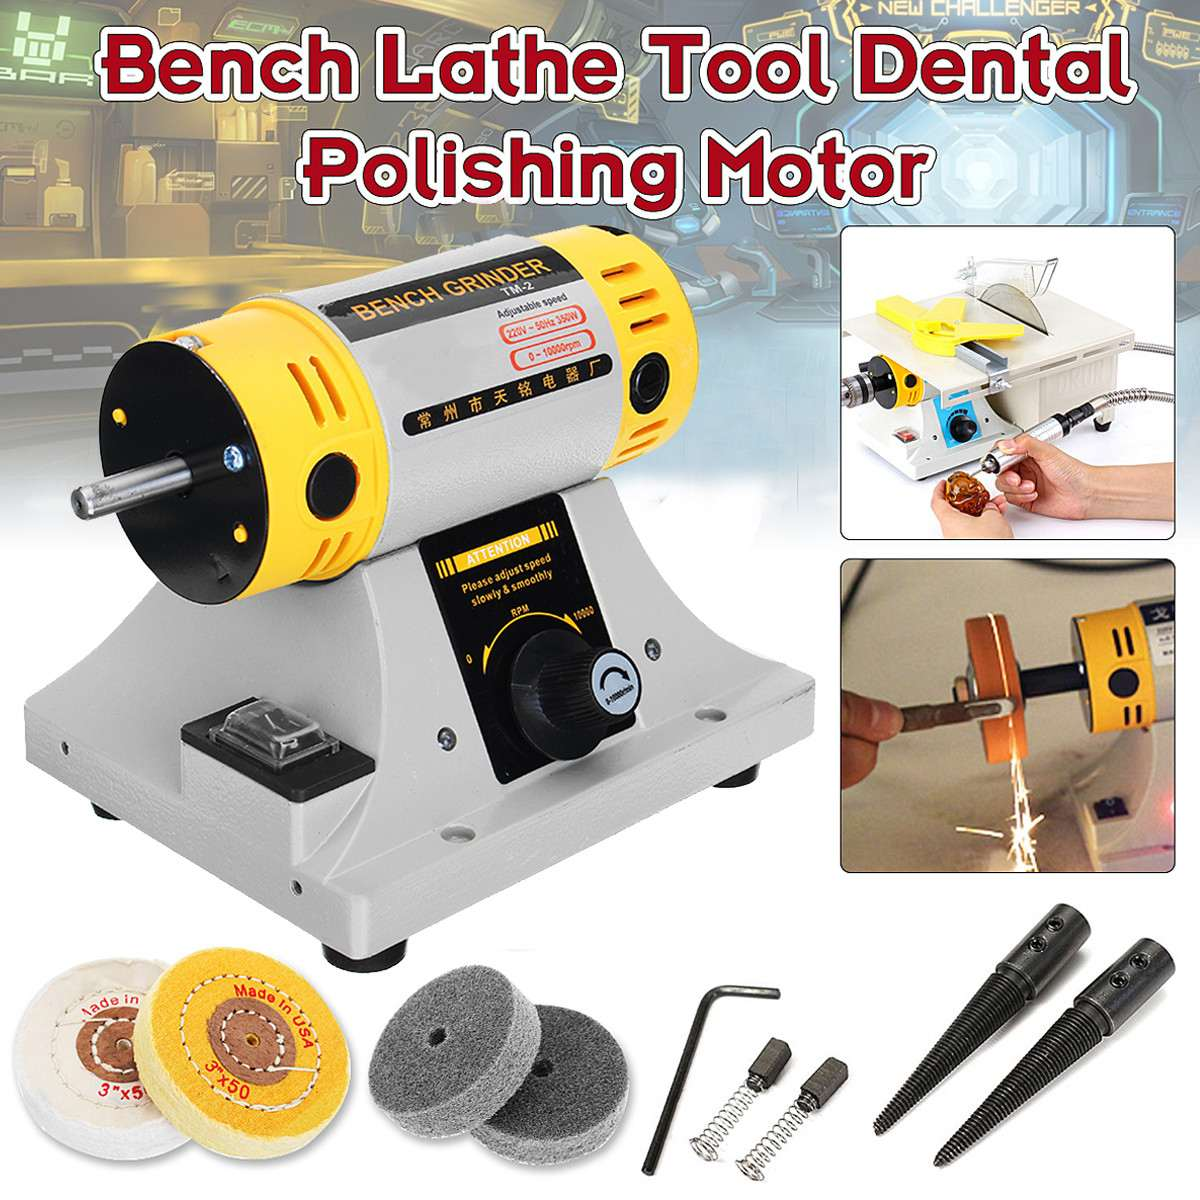 New 350W 220V Multi-purpose Mini Bench Grinder Polishing Machine Kit For Jewelry Dental Motor Lathe Bench Grinder Kit Set 1pcs multifunctional mini bench lathe machine electric grinder polisher drill saw tool 350w 10000 r min